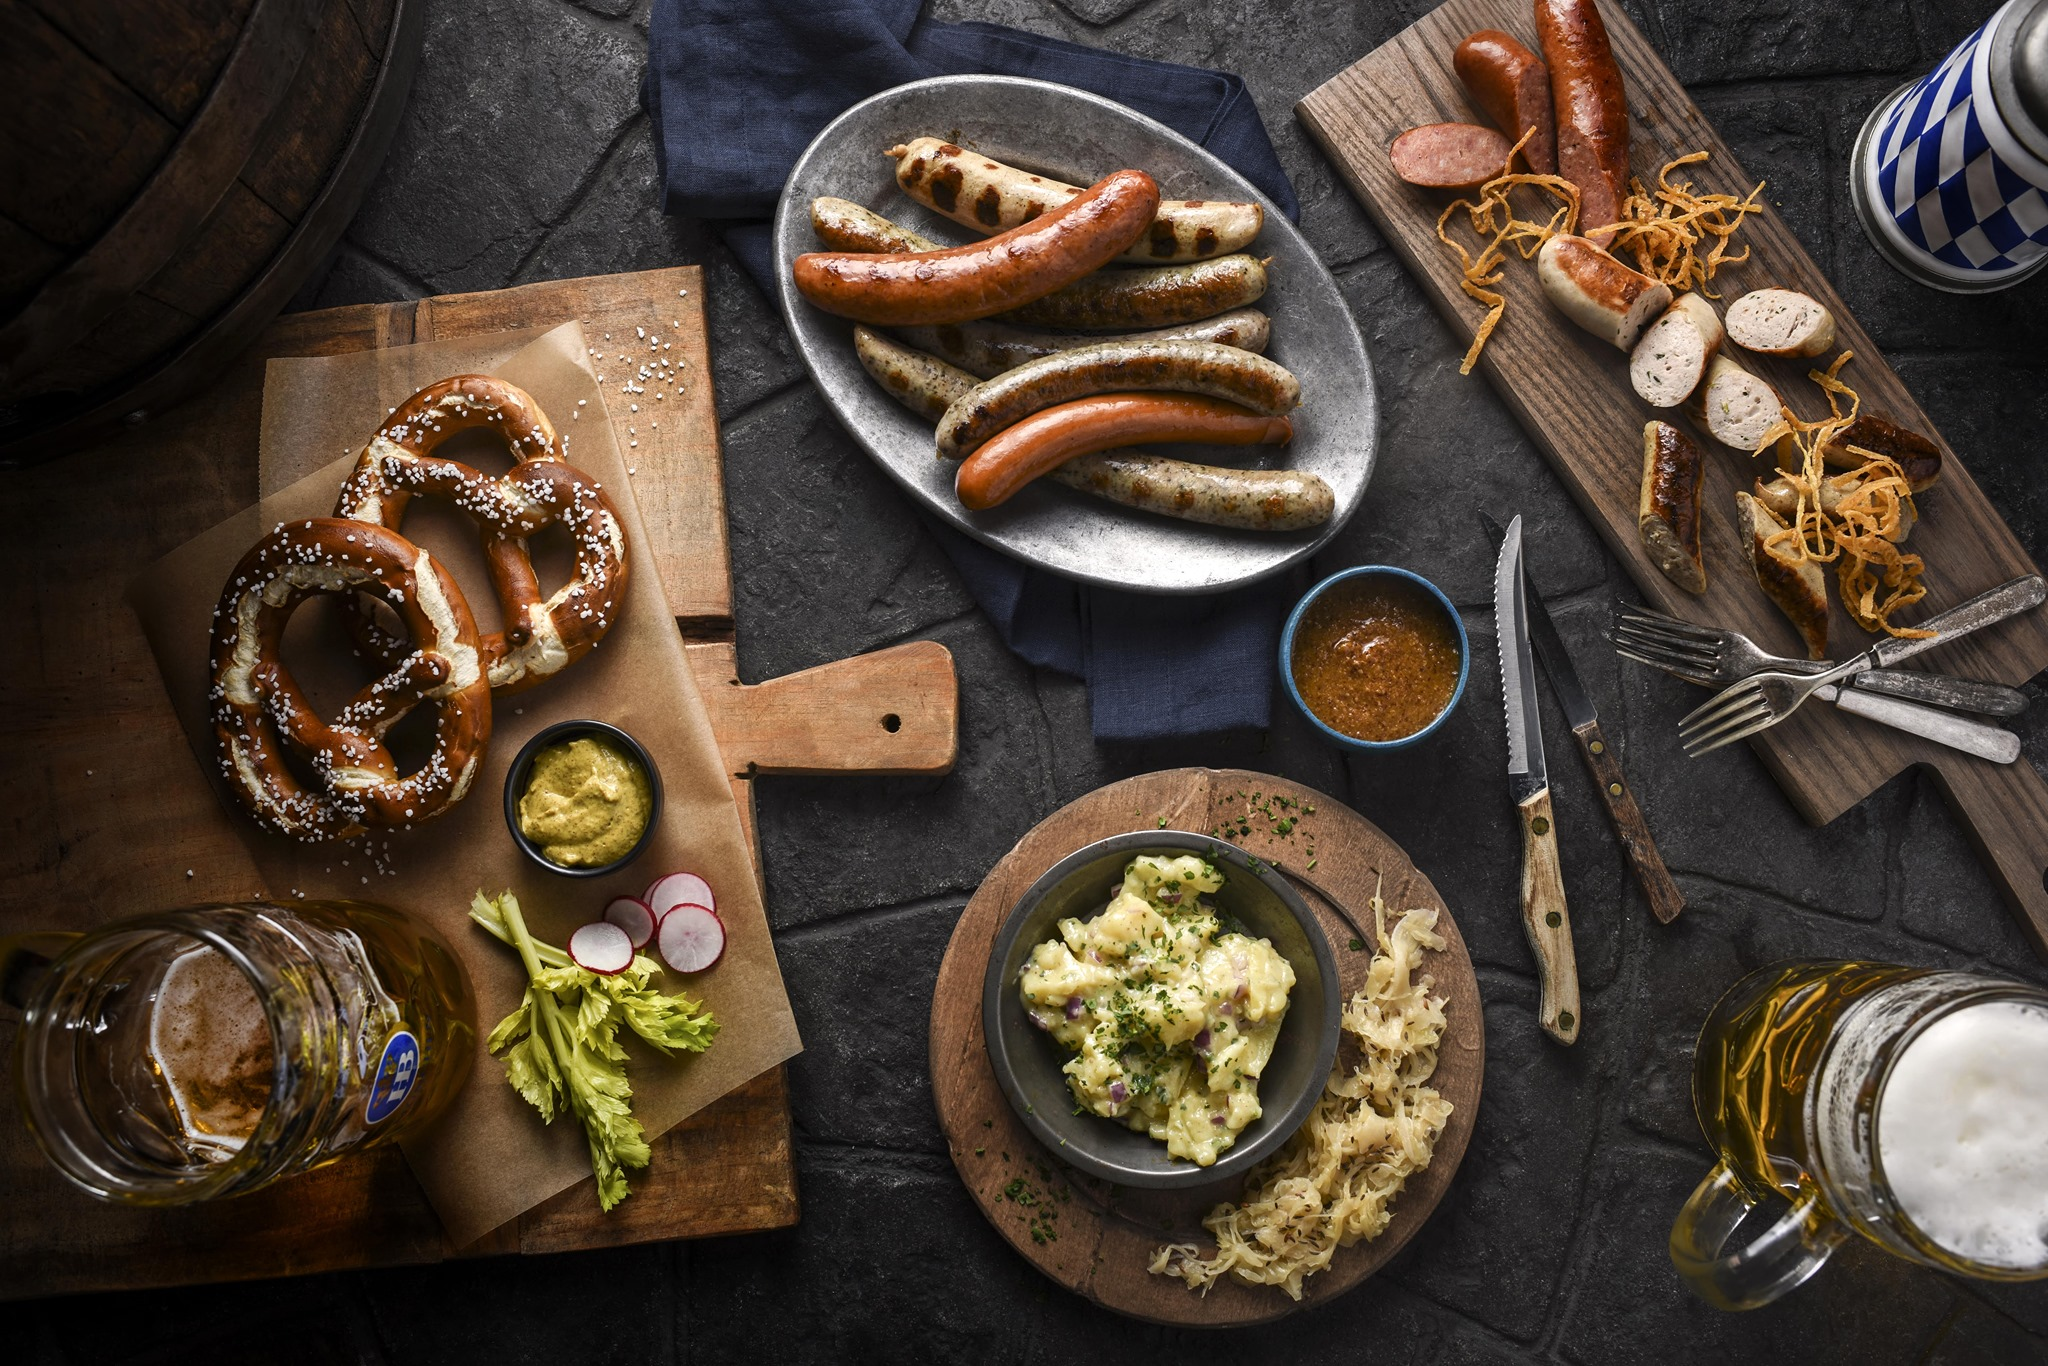 Pretzels, sausages, and more German food on cutting boards